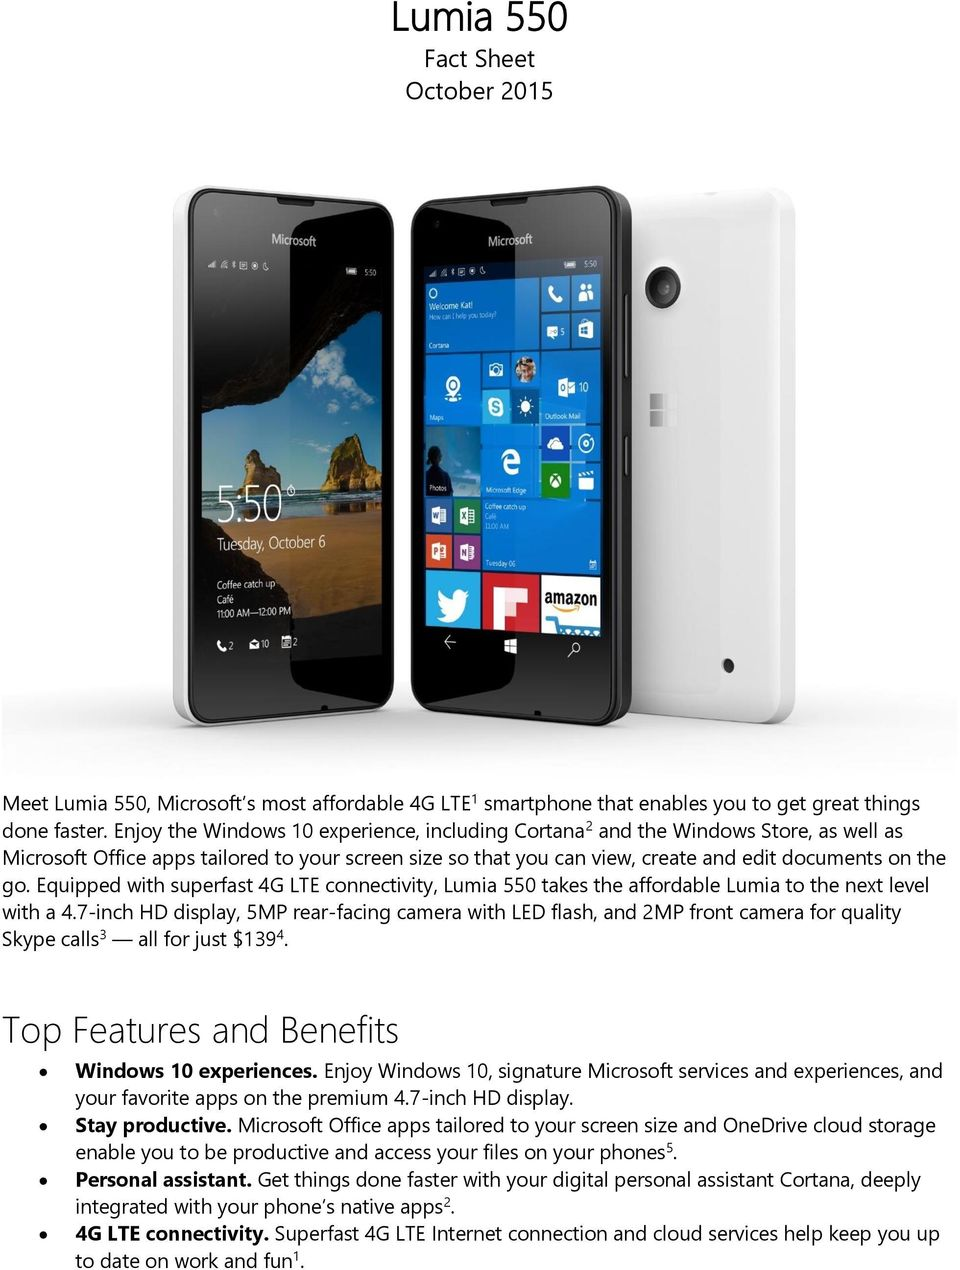 Equipped with superfast 4G LTE connectivity, Lumia 550 takes the affordable Lumia to the next level with a 4.